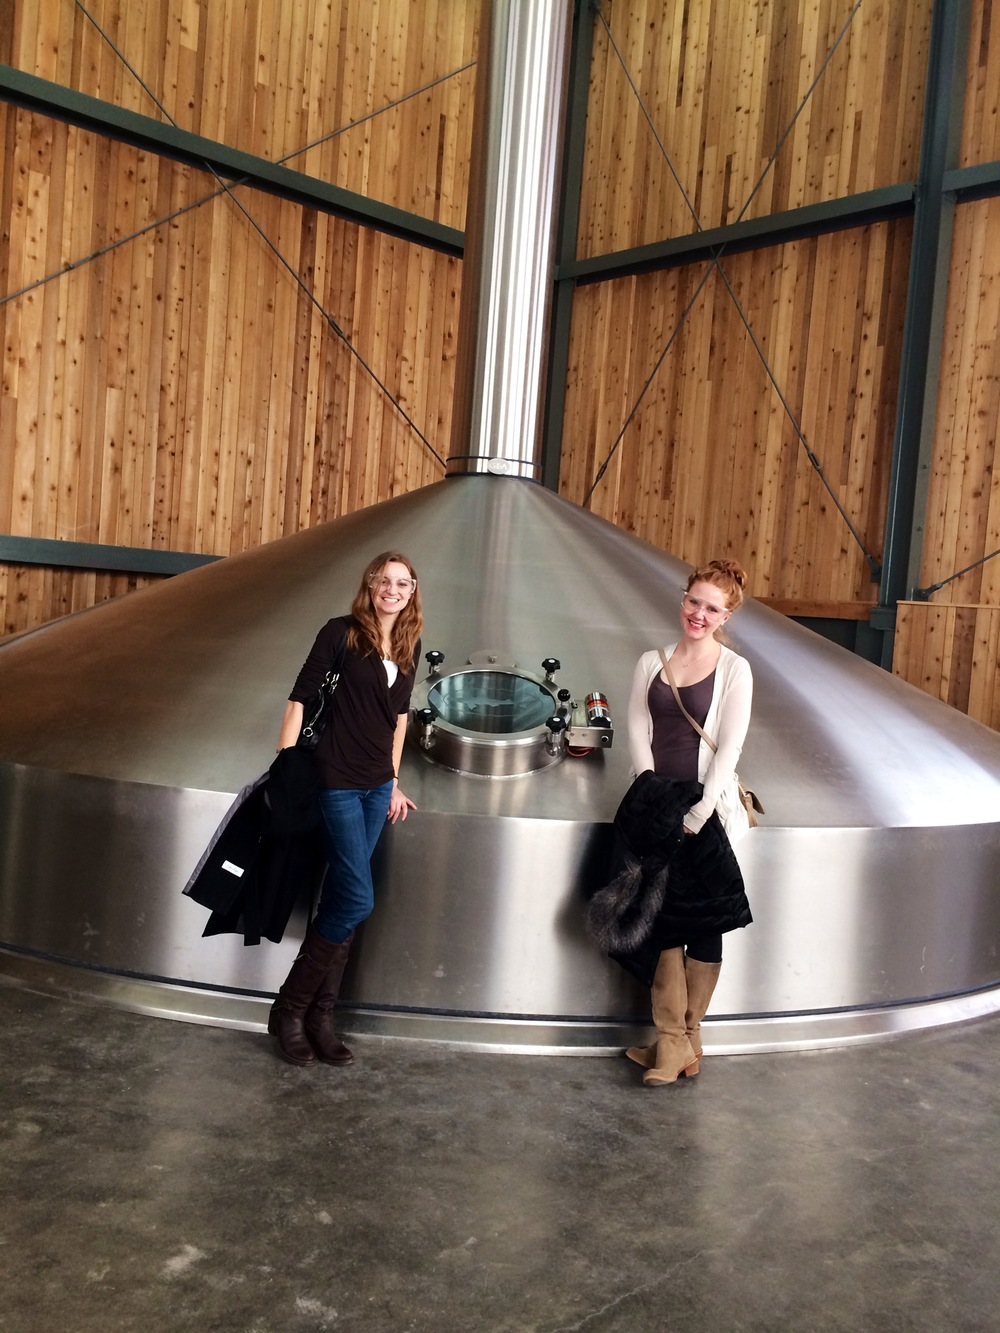 VIP brewery tour